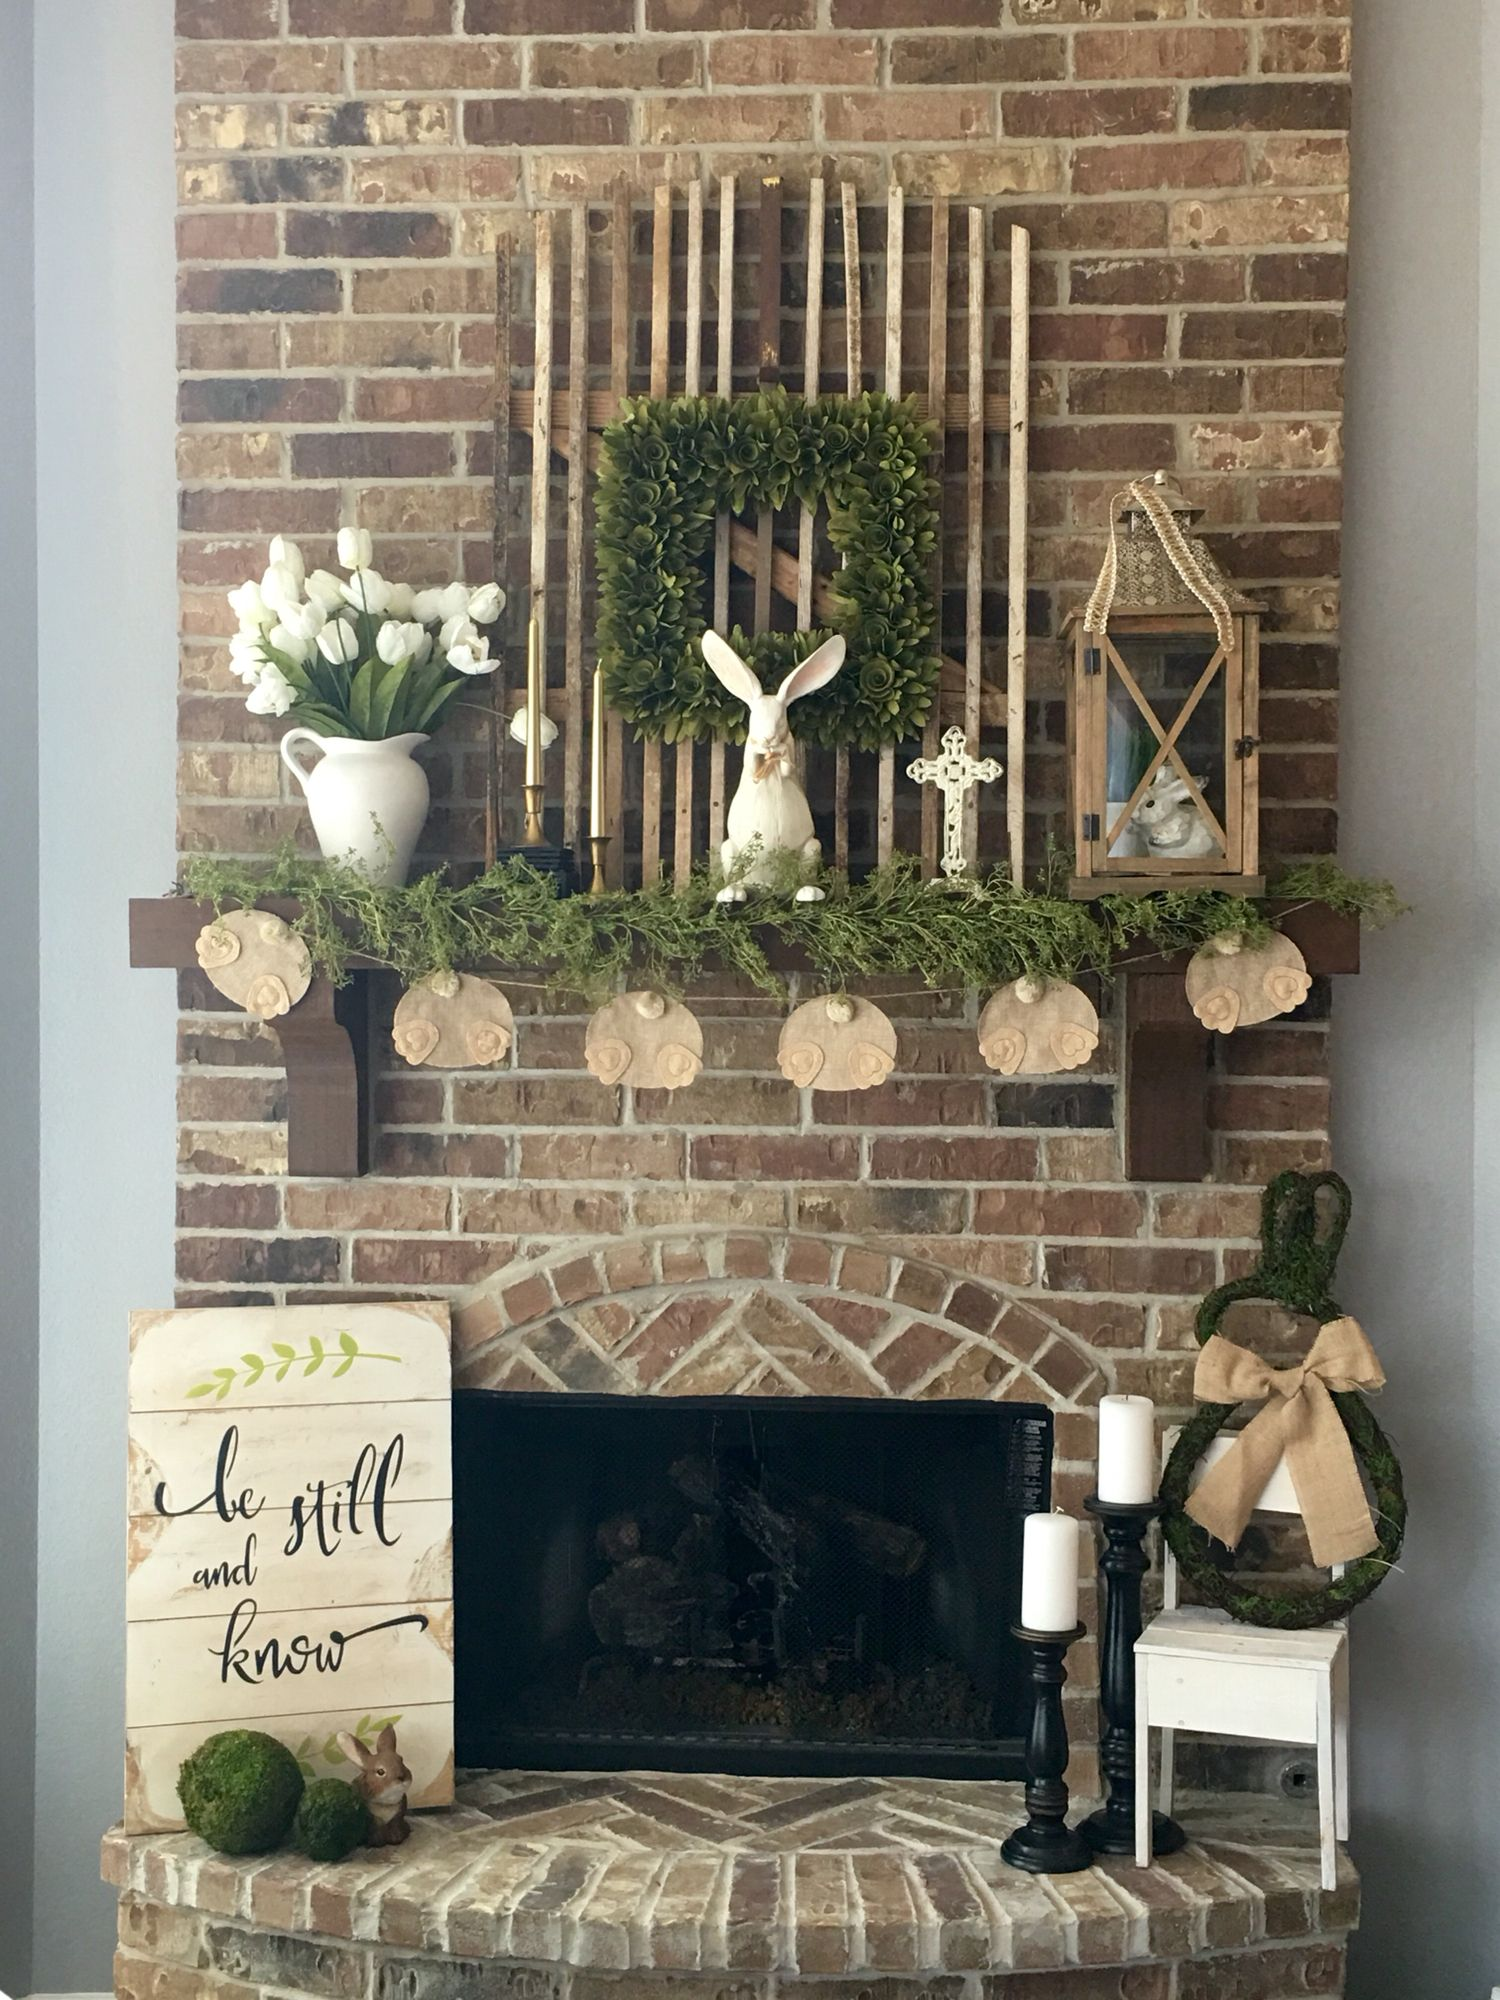 Farmhouse Rustic Fireplace Mantel Decor Easter Or Spring Decor Replace Bunnies For Spring Mantel